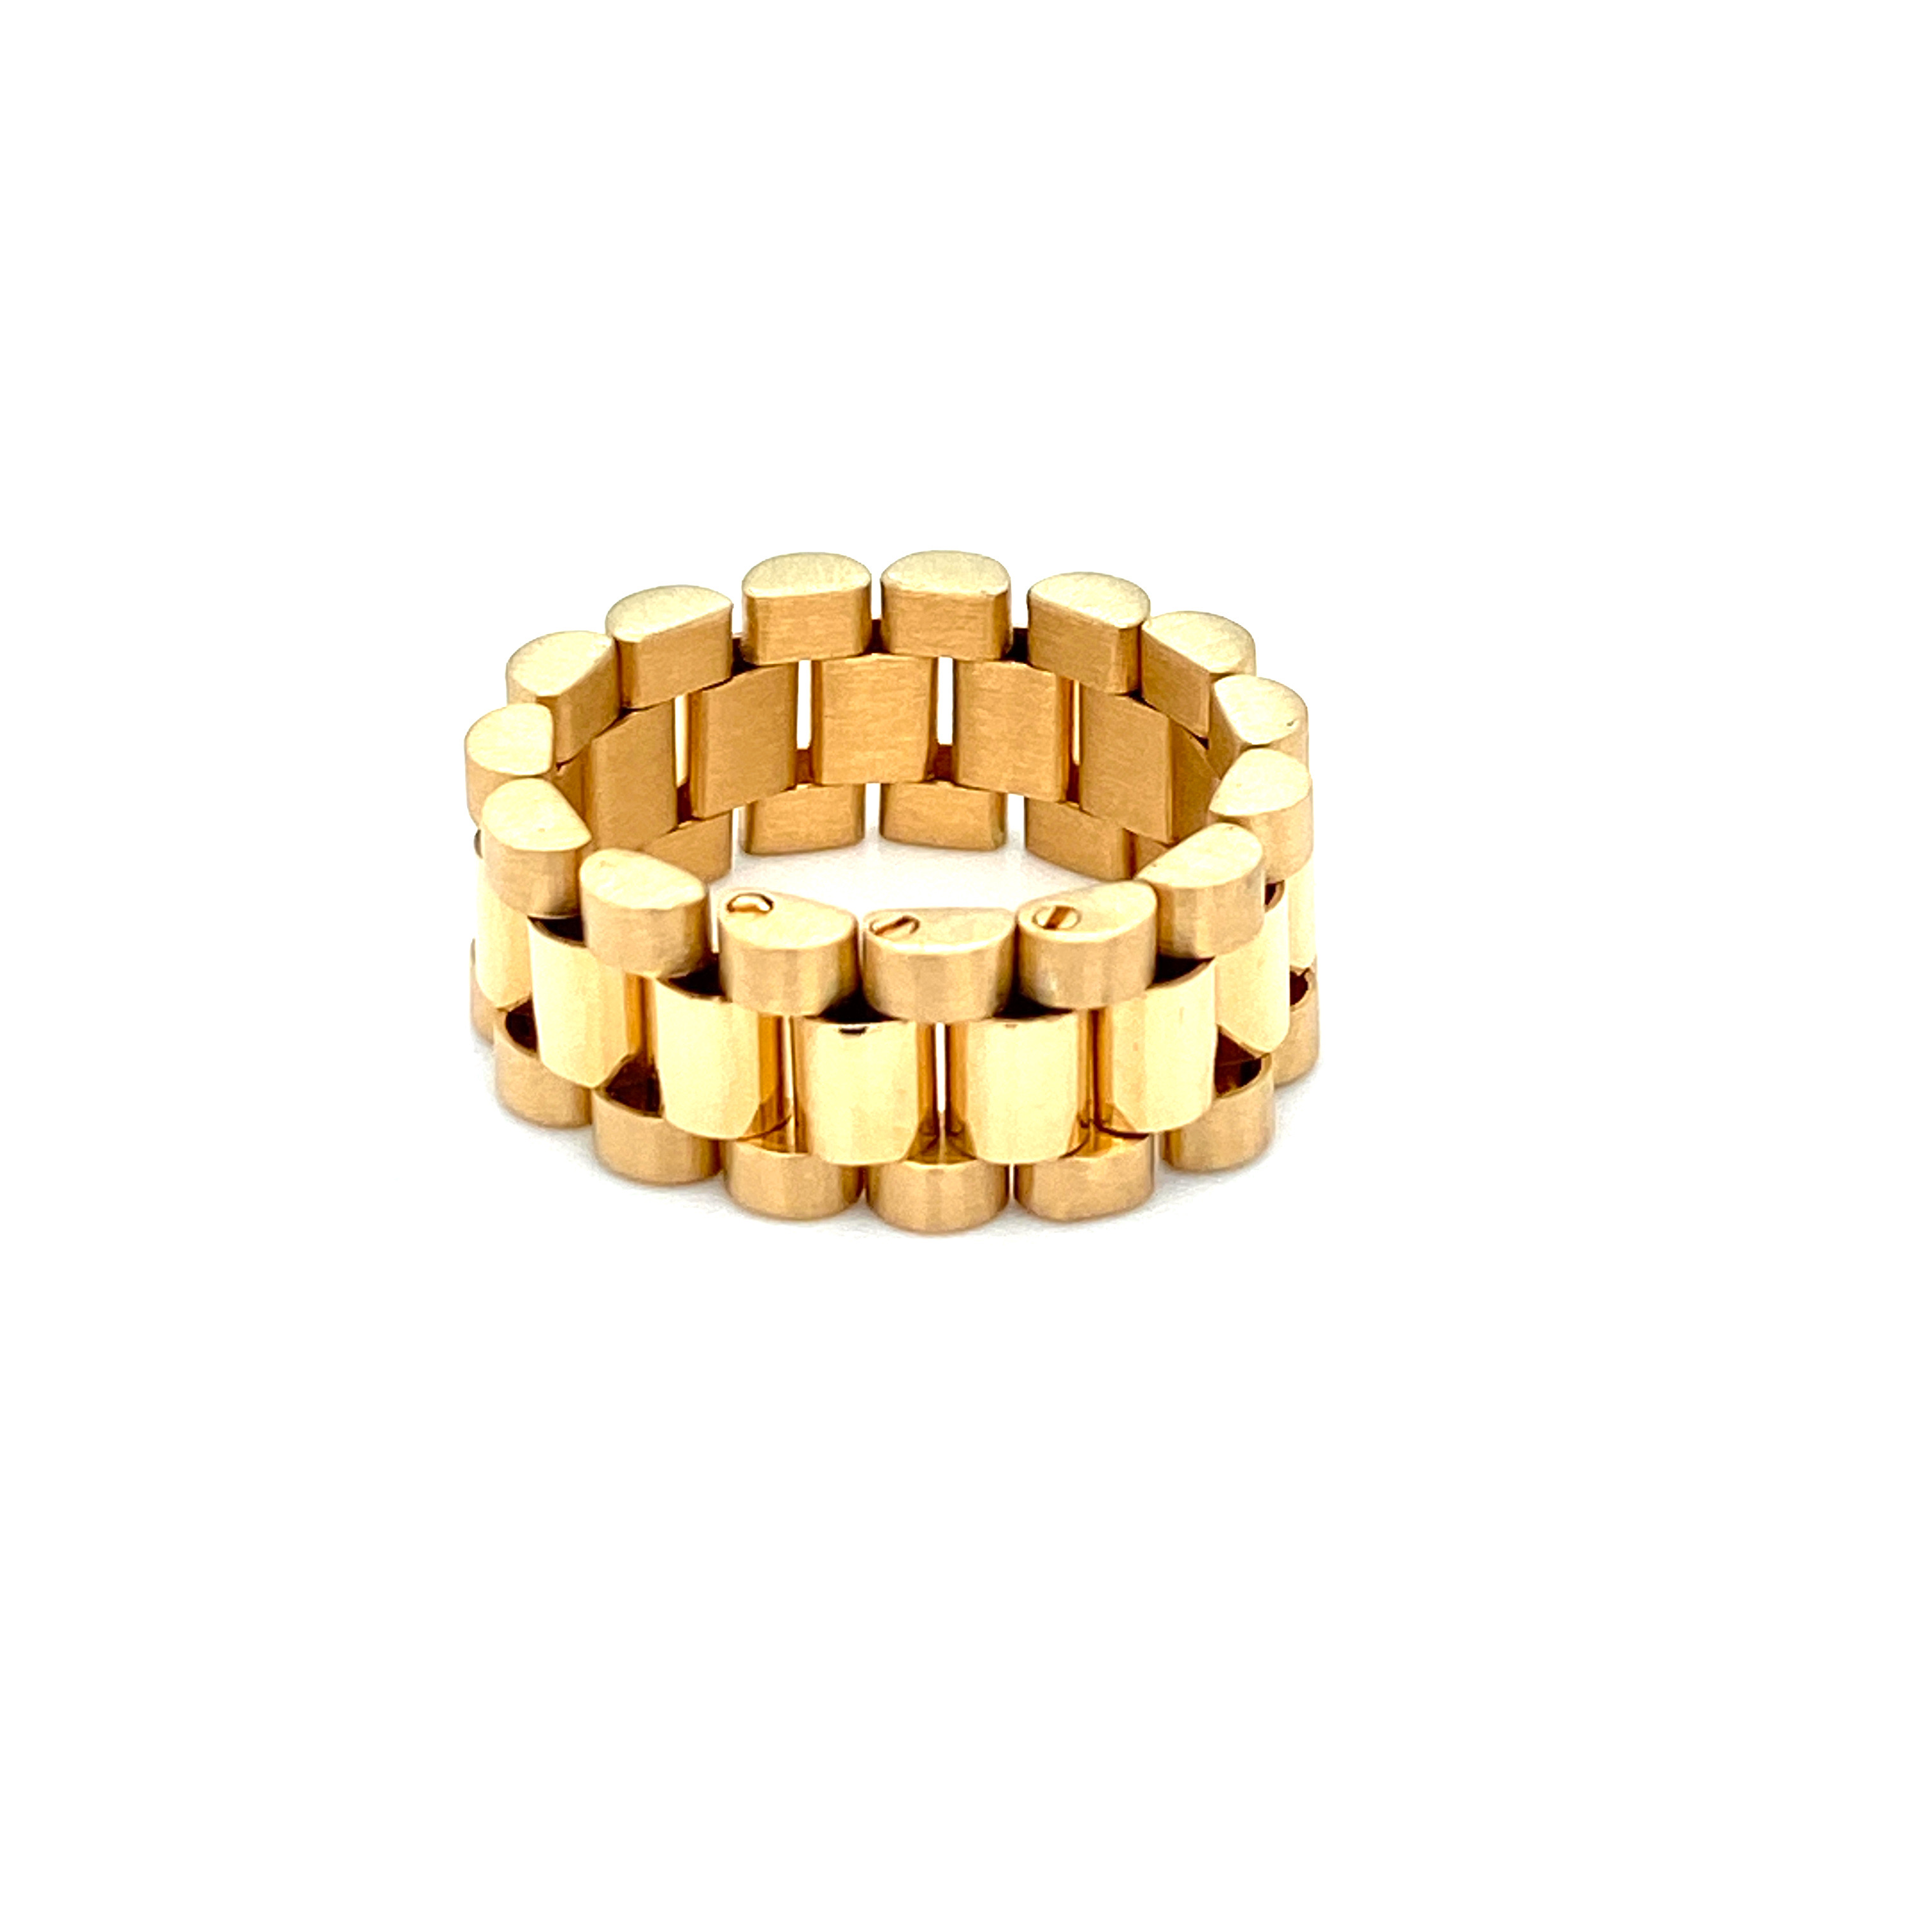 Gelbgold -Unisex Ring- starting from 990,- €